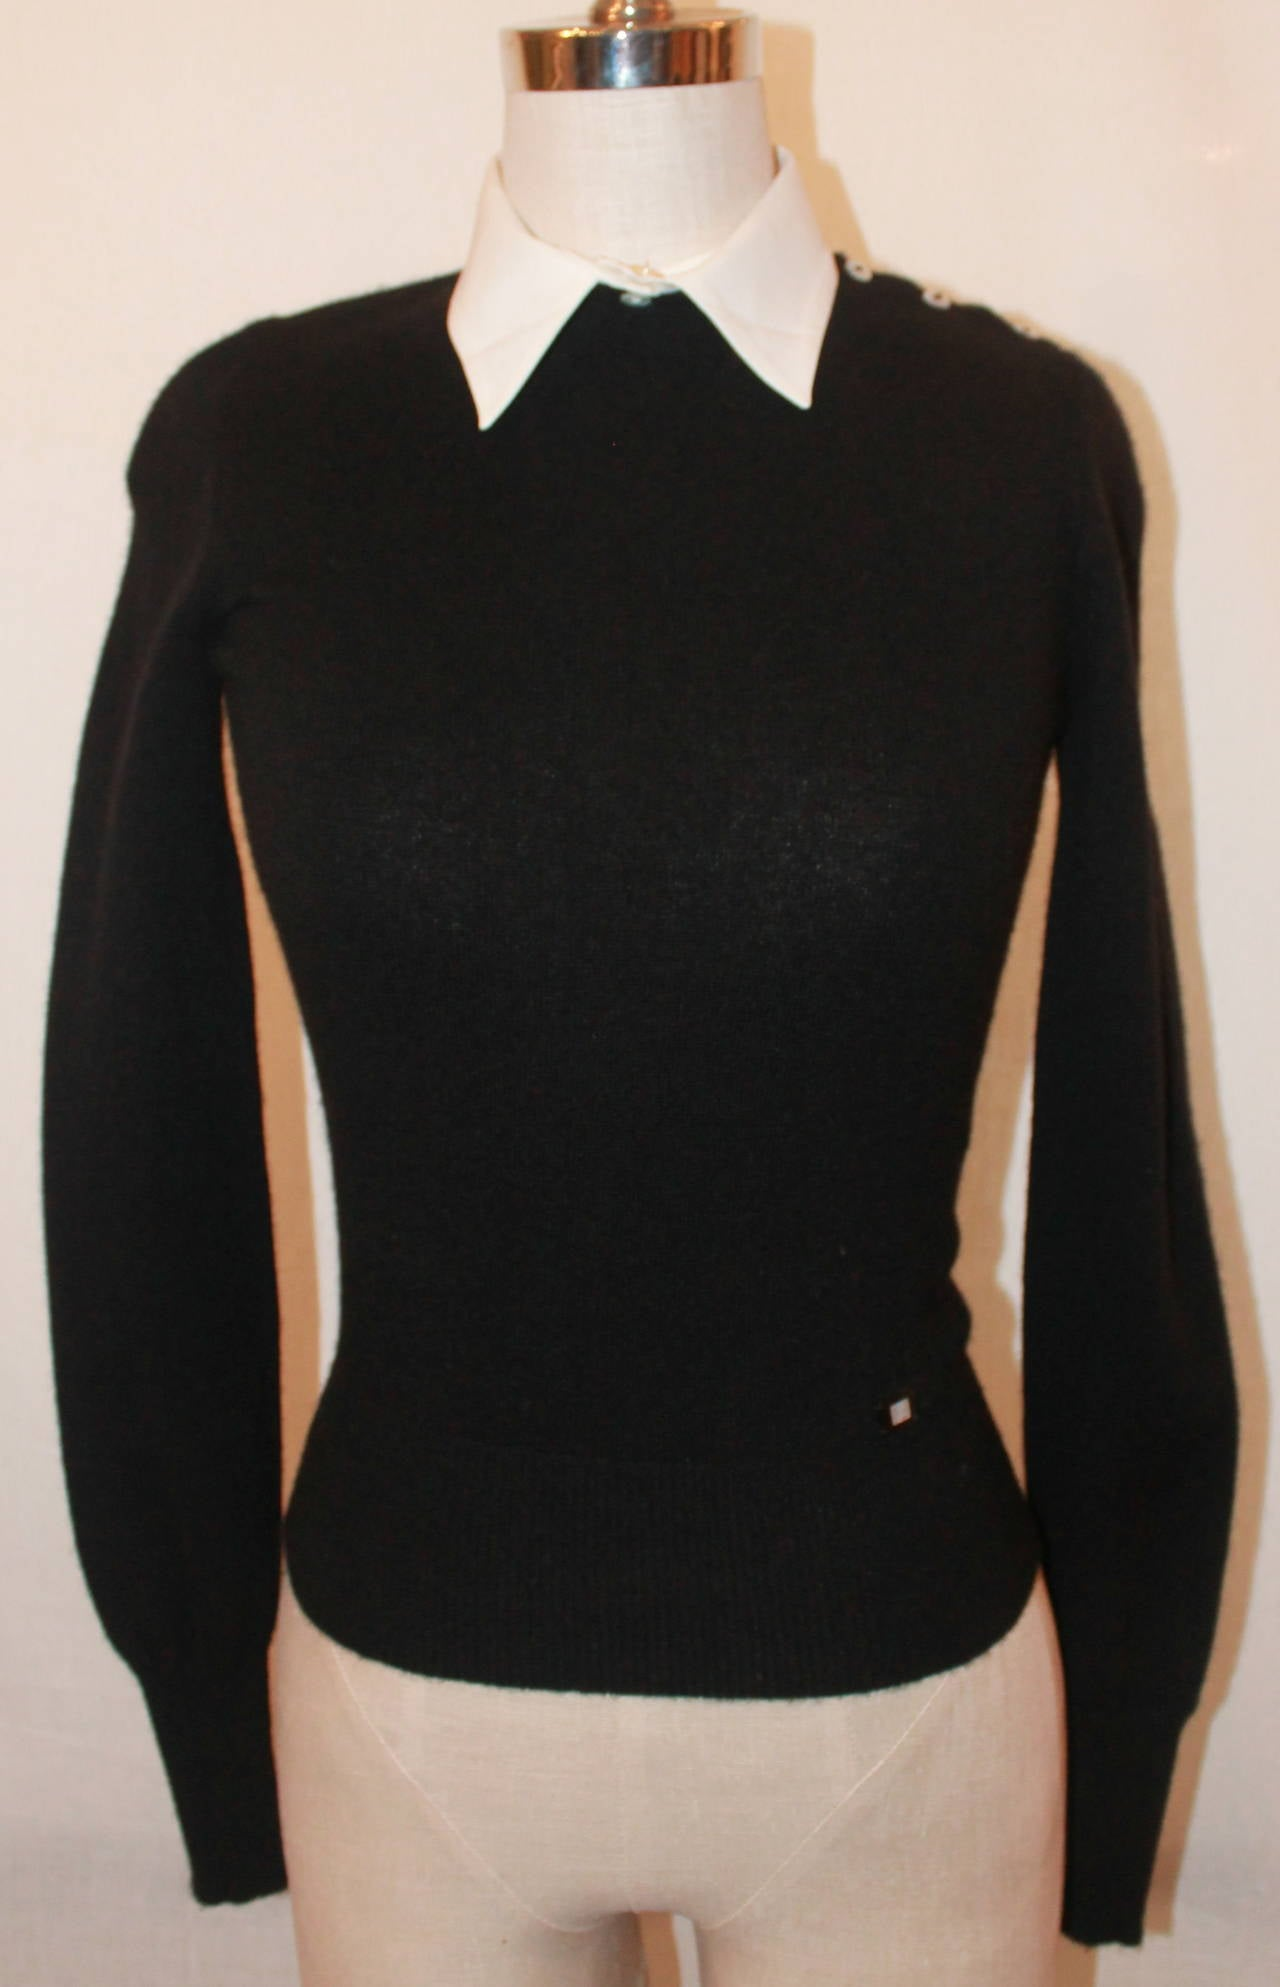 Black t shirt with white collar - Chanel Black Cashmere Sweater With Removable White Collar 34 2